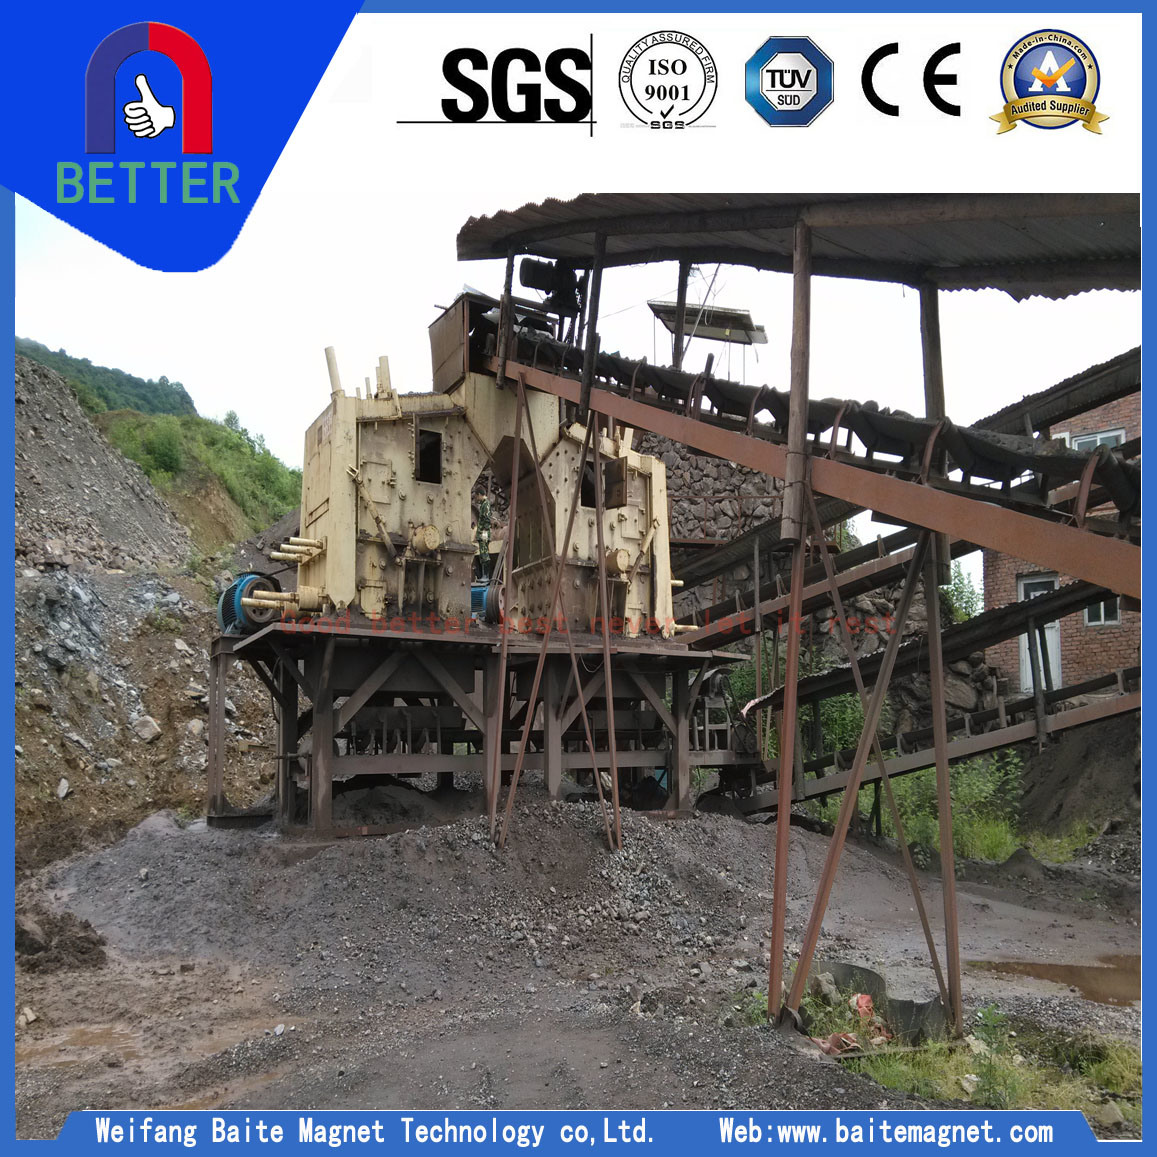 Px Series New Type Stone/ Mining/Mineral /Fine Crusher for Mining/Metallurgy/Buliding Materials/Sand/Ceramics